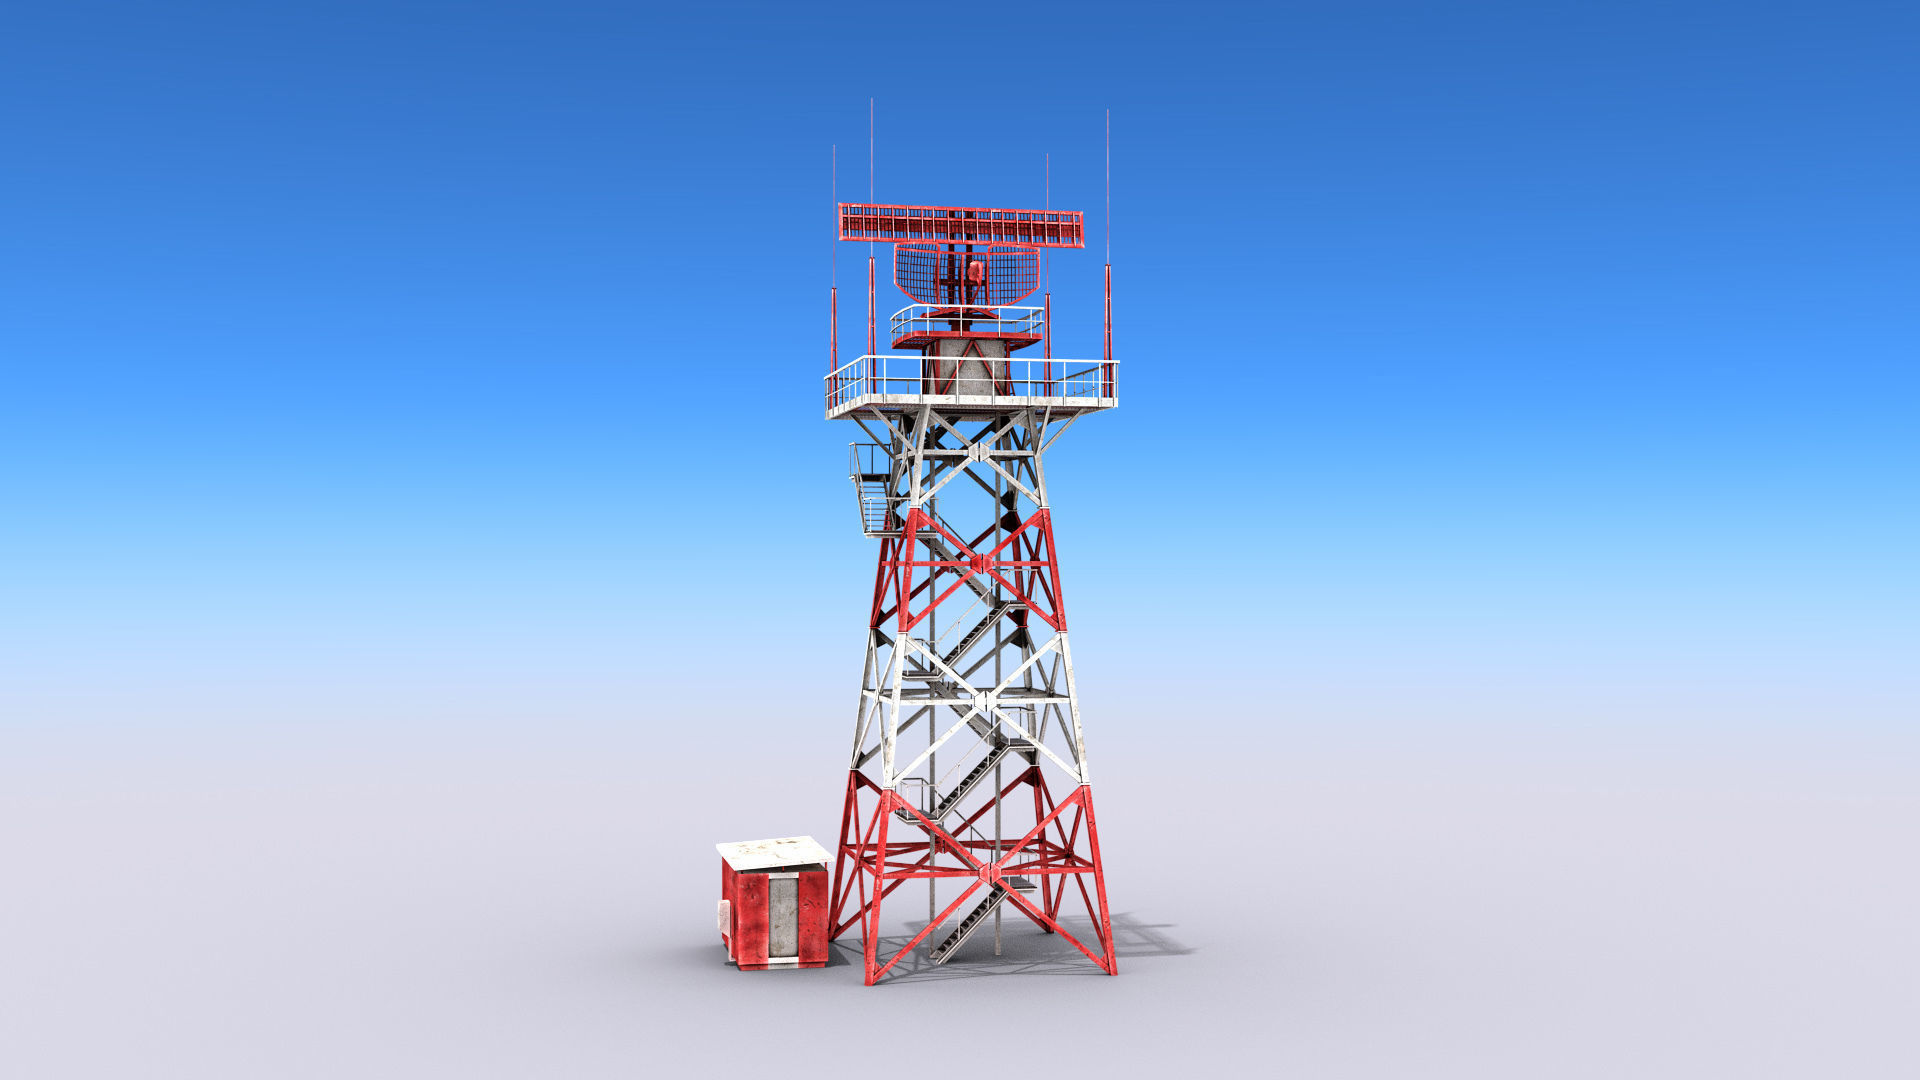 Big Radar Tower